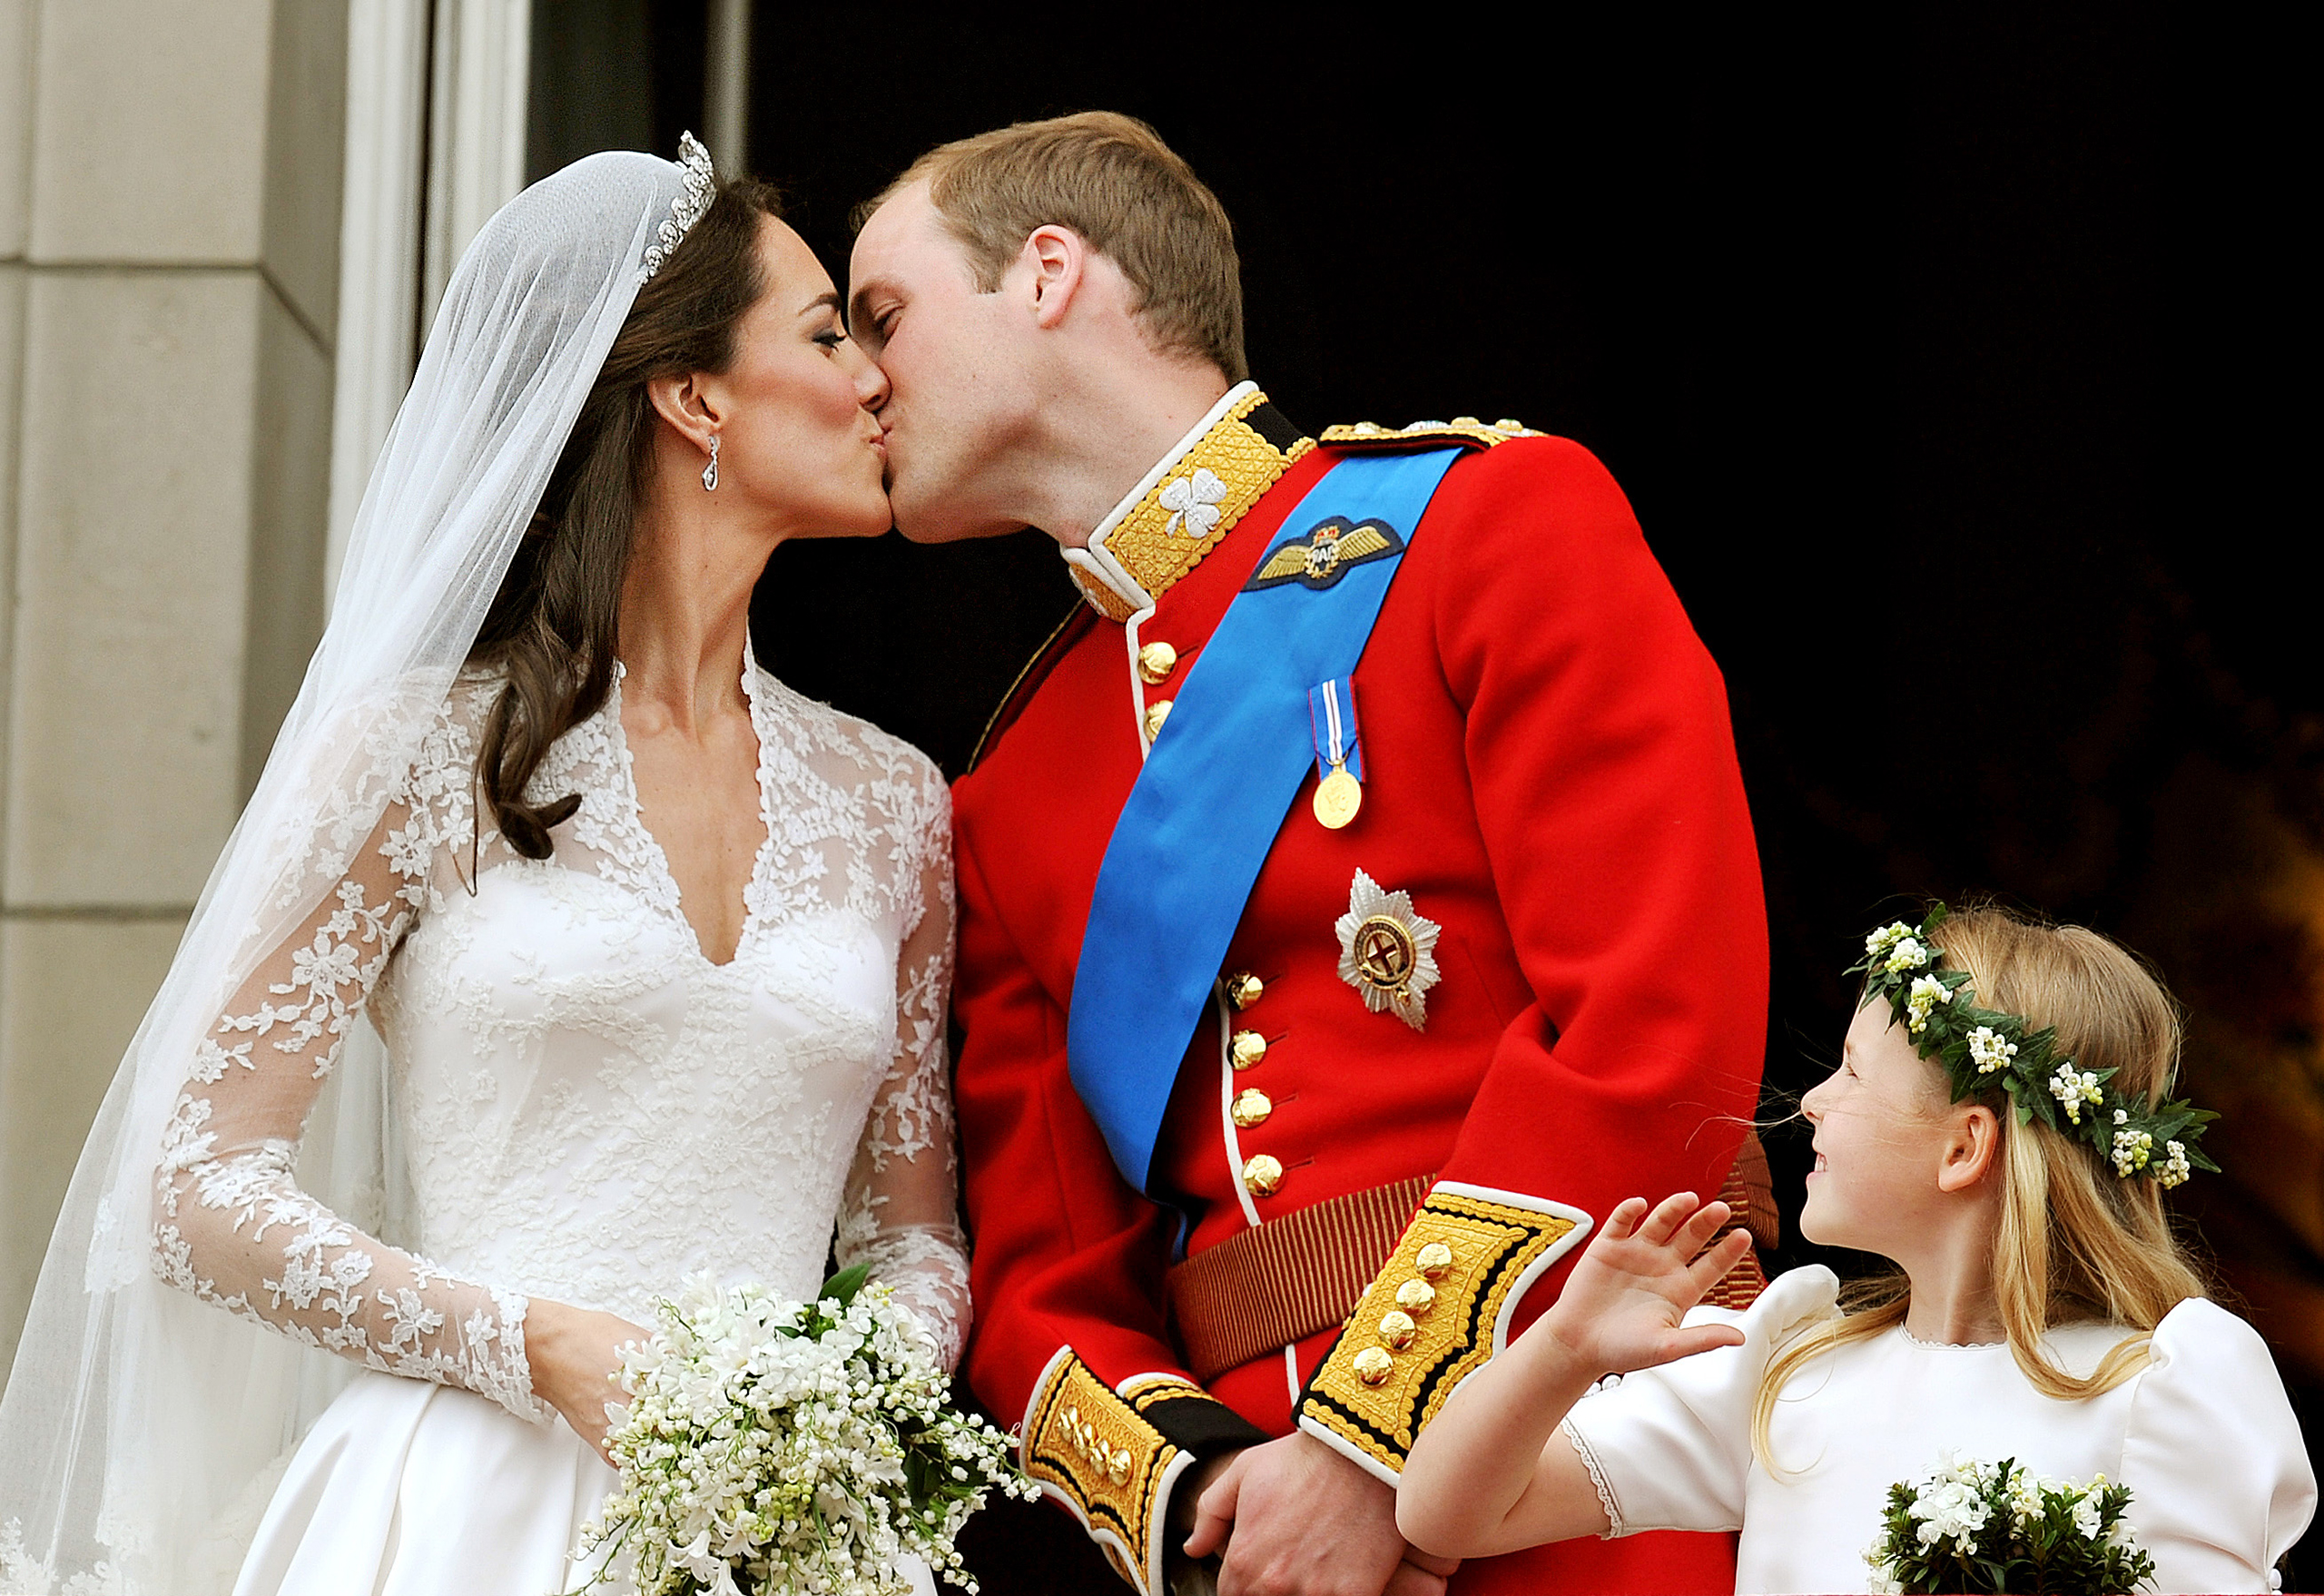 Prince William and Catherine kiss on the balcony of Buckingham Palace after getting married in London on April 29, 2011.